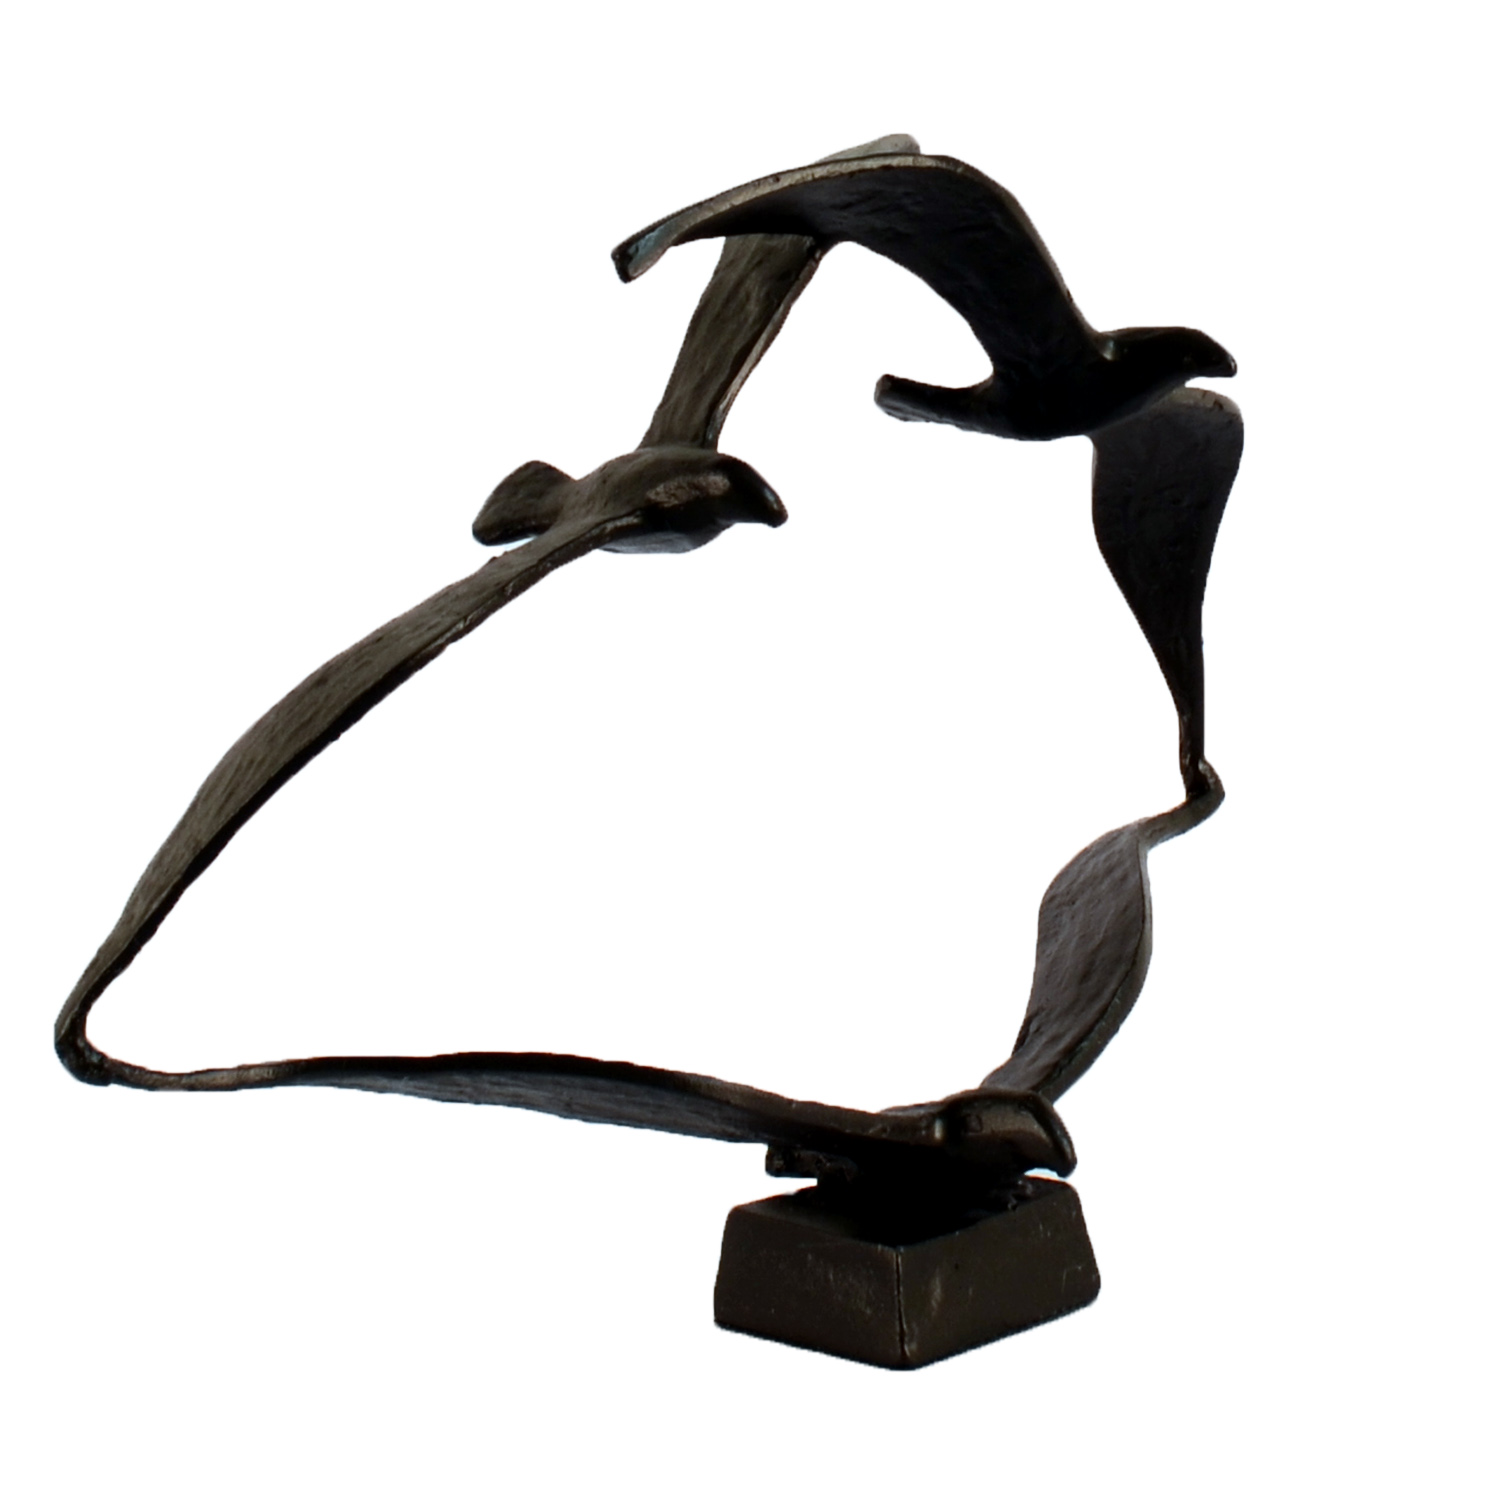 Elur Seagulls Iron Ornament 20cm in Mocha Brown - Ruby's Garden Boutique